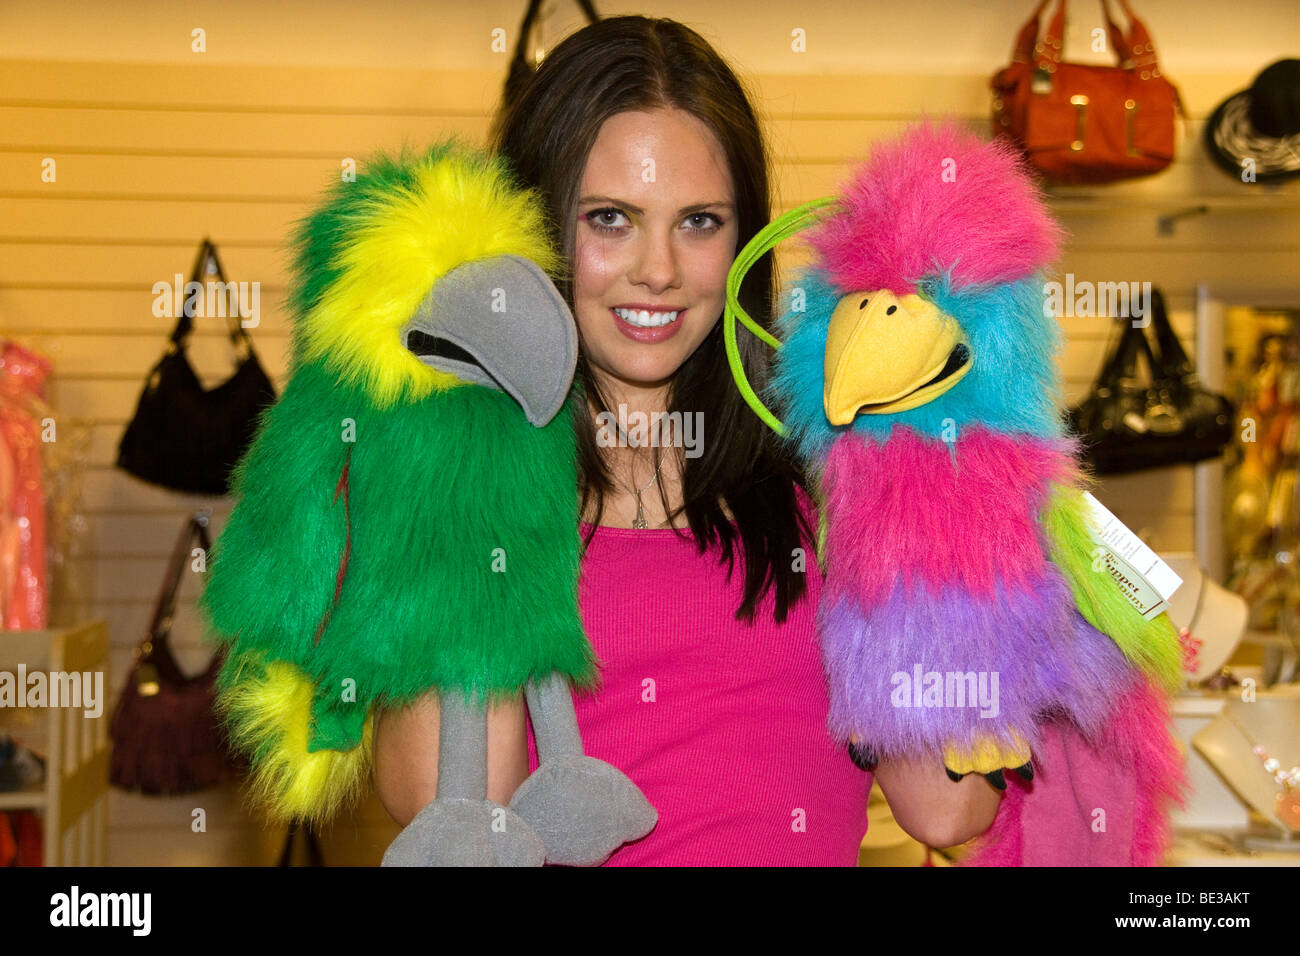 Glamourous female playing with two colourful hand held parrot puppets inside a Dundee Boutique store Stock Photo